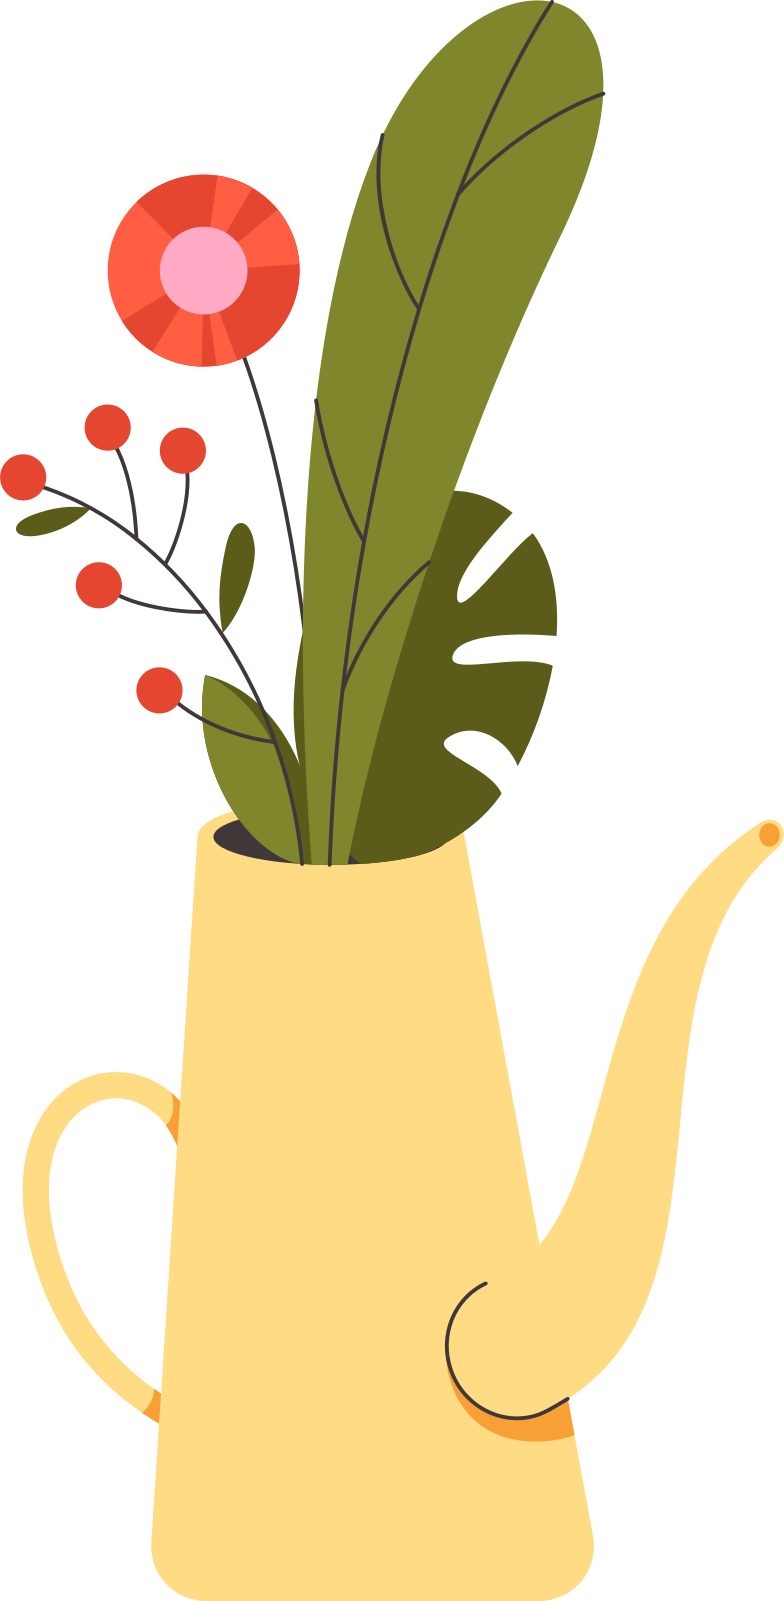 flowers in a watering can Clipart illustration in PNG, SVG